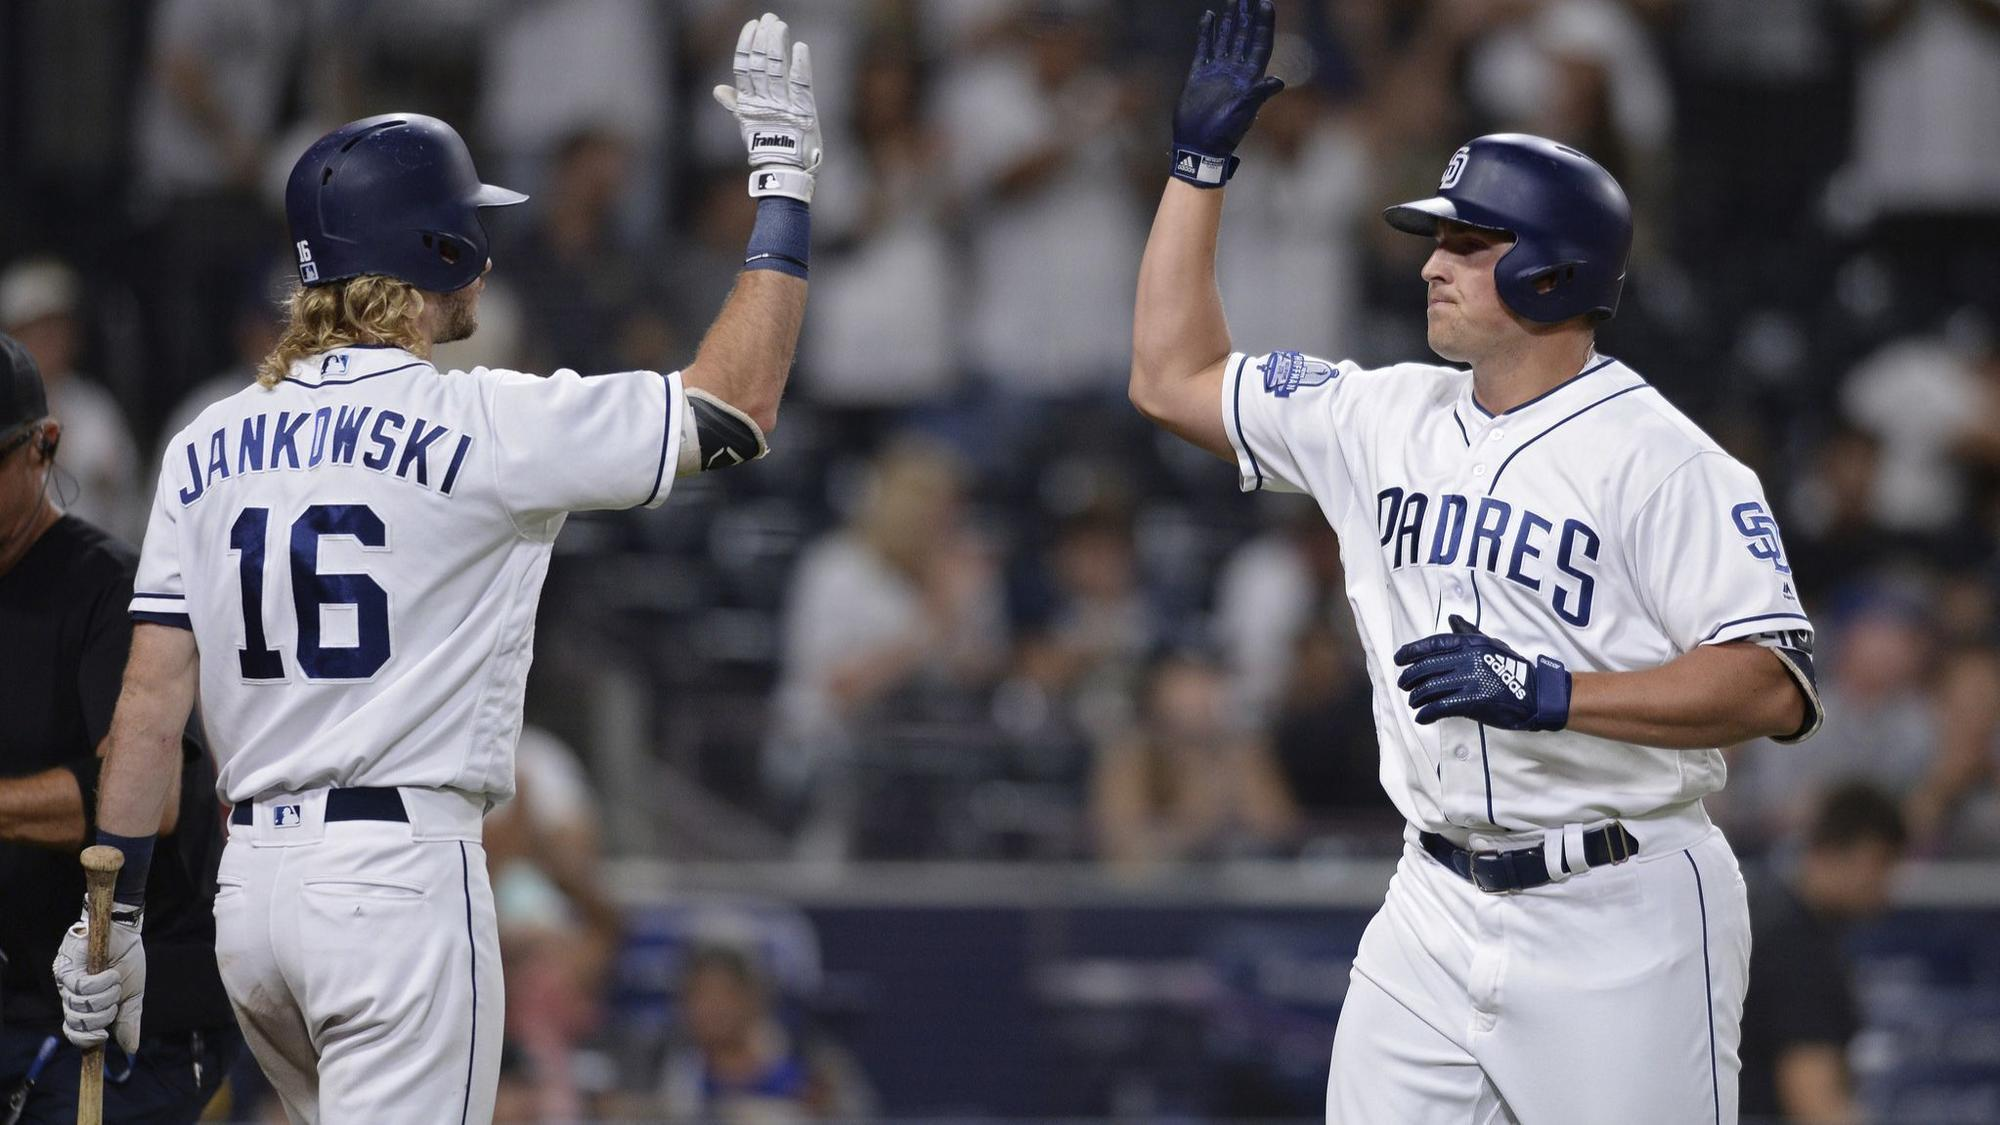 Sd-sp-homegrown-rivals-blazing-trail-for-padres-in-nl-west-20180824